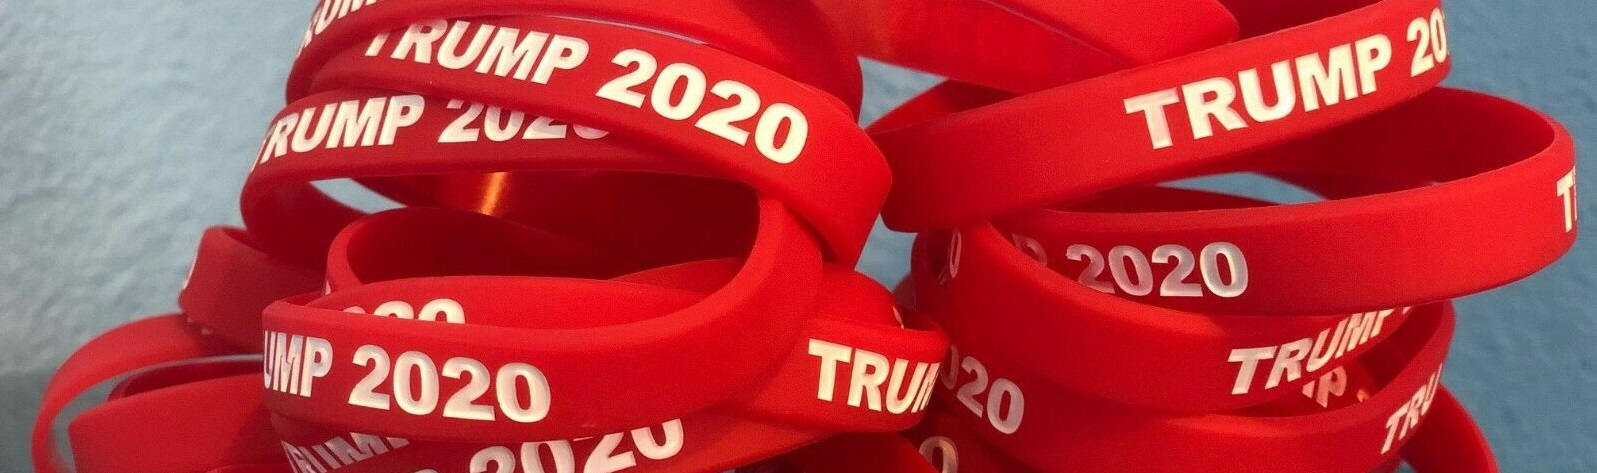 Trump 2020 wristbands red